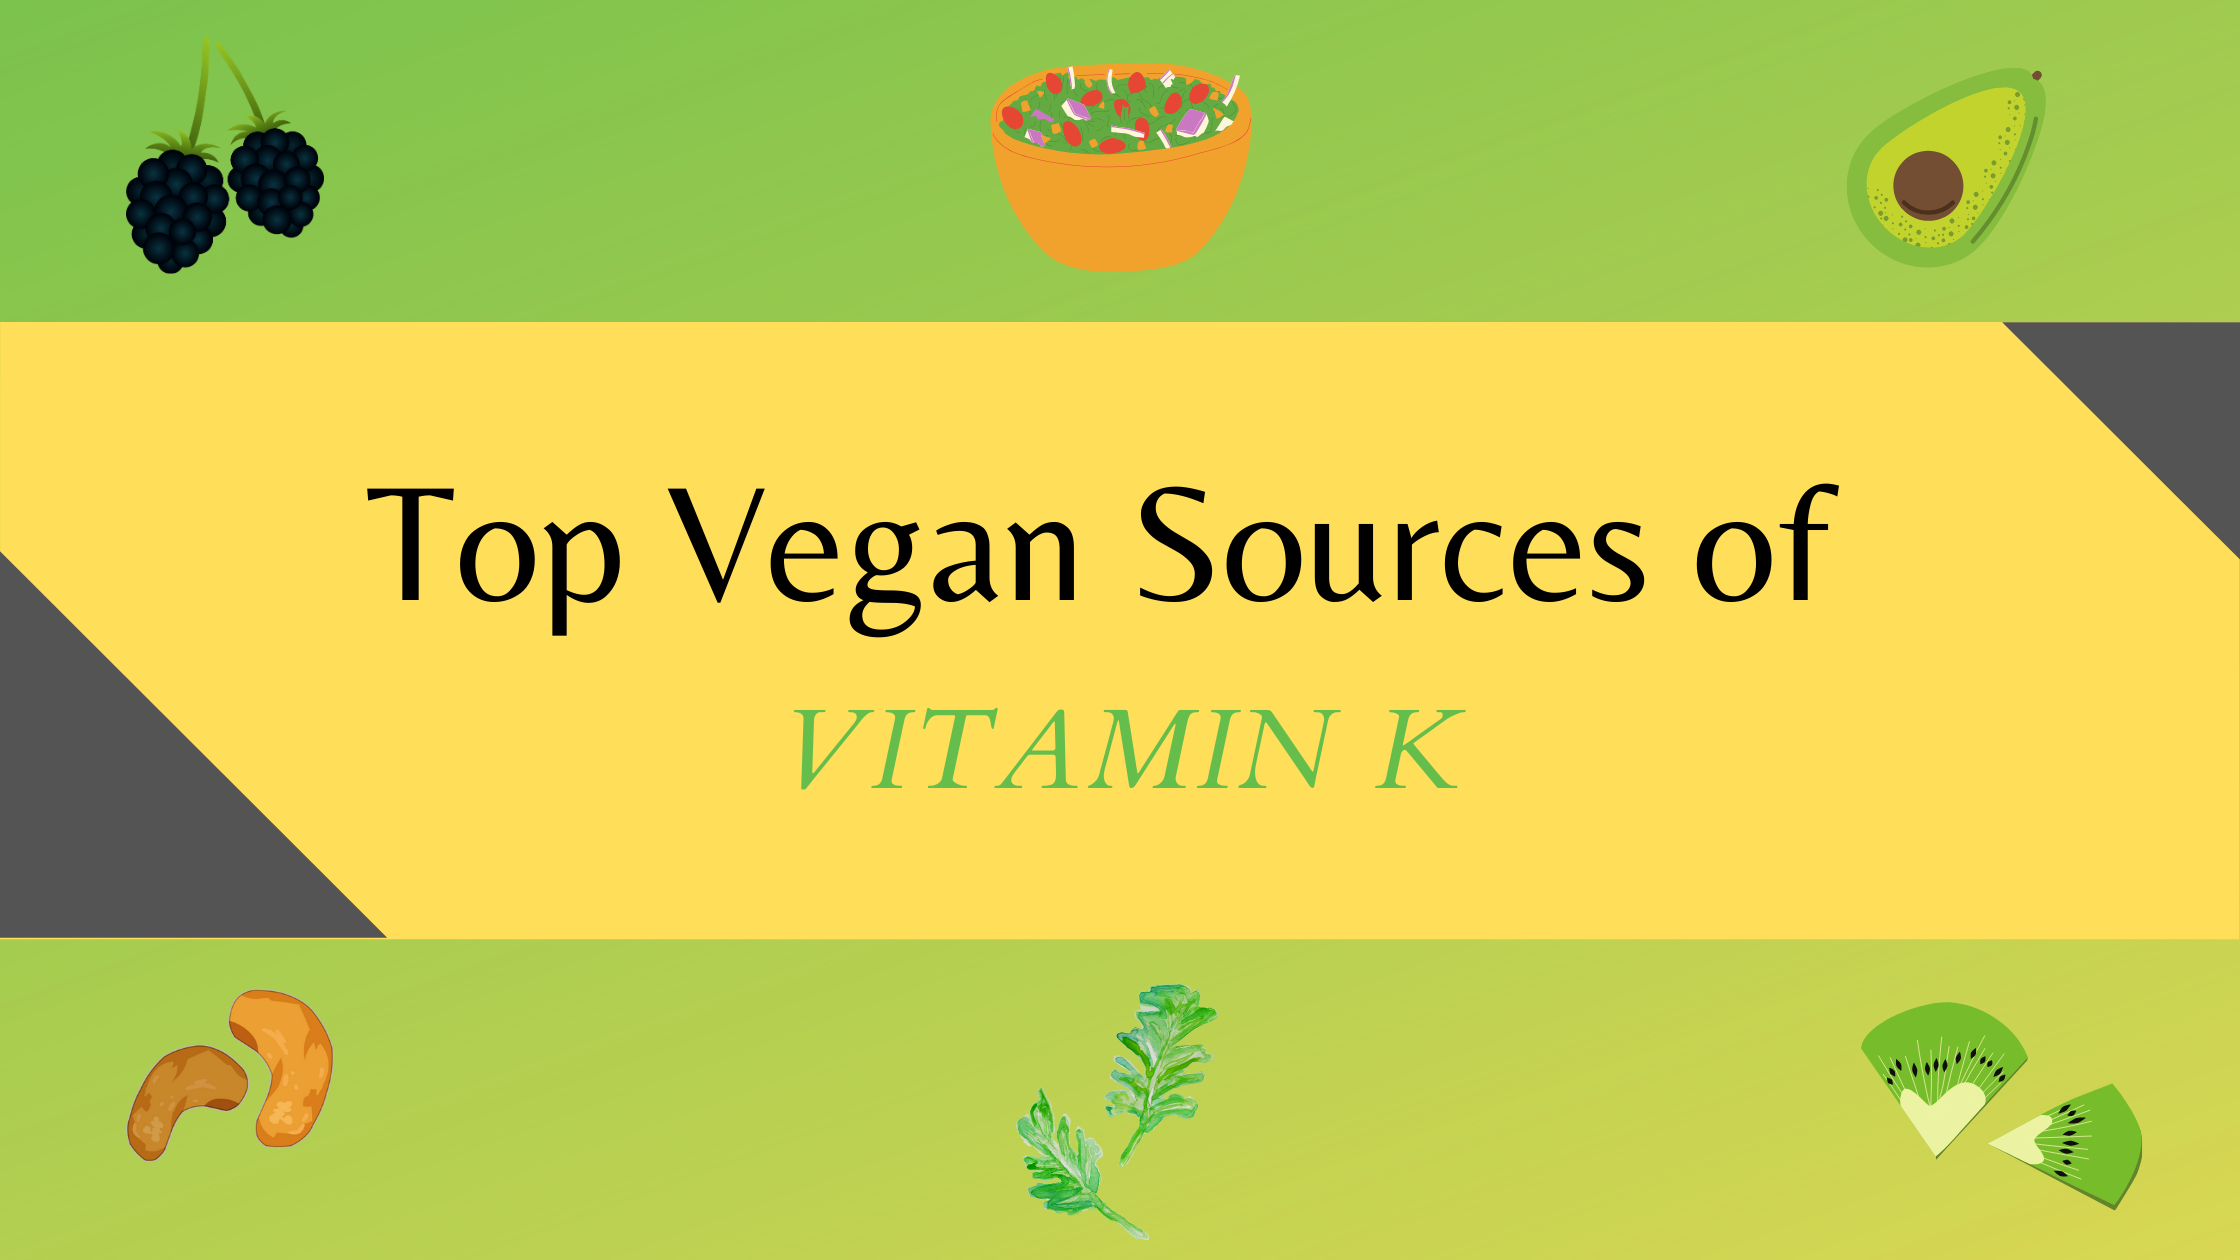 vitamin k rich vegan food sources